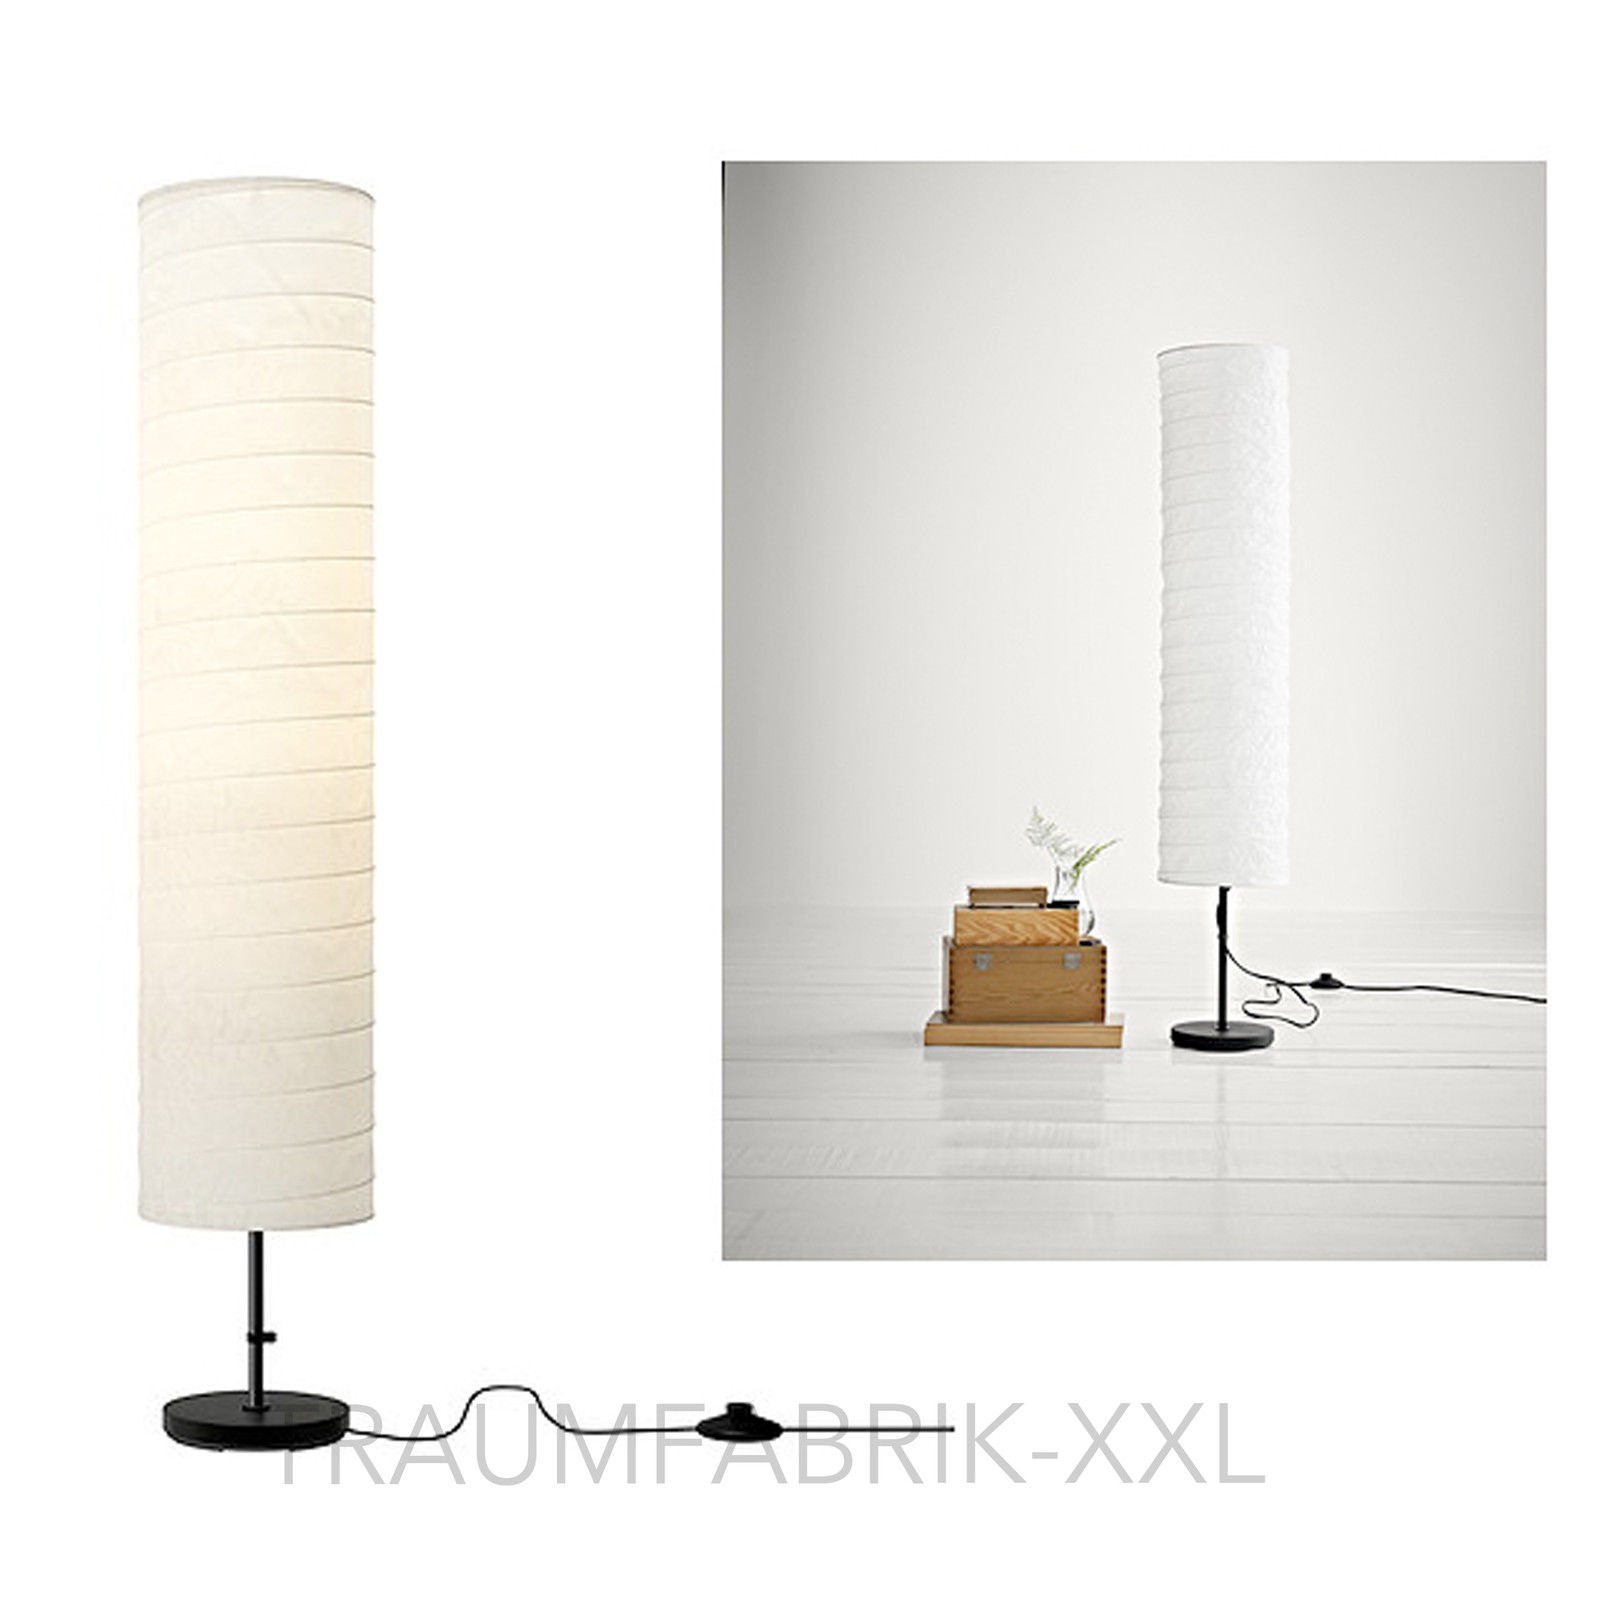 ikea holm stehlampe standleuchte aus papier standlampe stehleuchte lampe 116 cm traumfabrik xxl. Black Bedroom Furniture Sets. Home Design Ideas